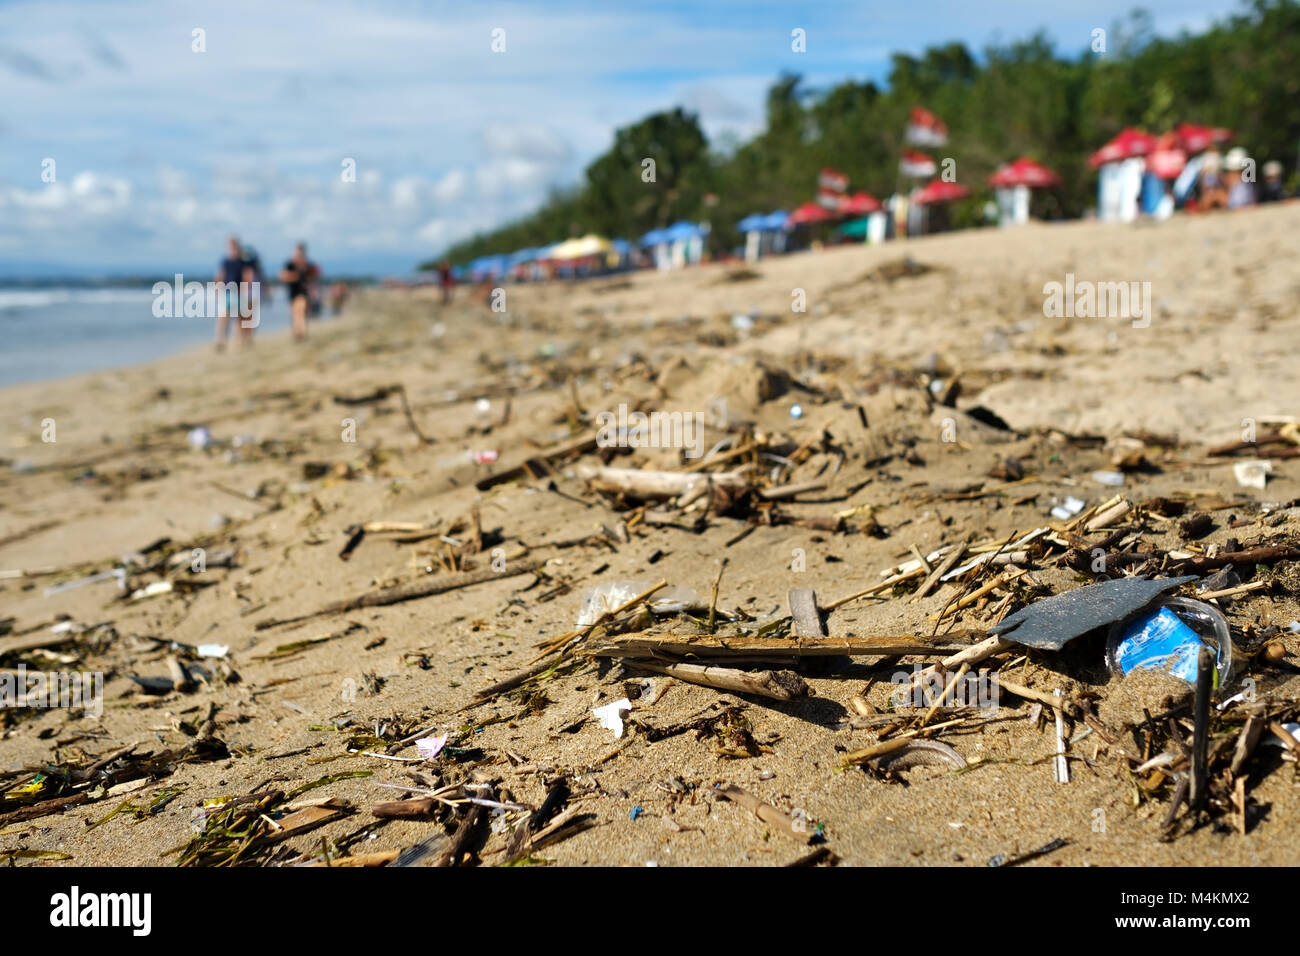 Beach pollution in Bali Indonesia. - Stock Image